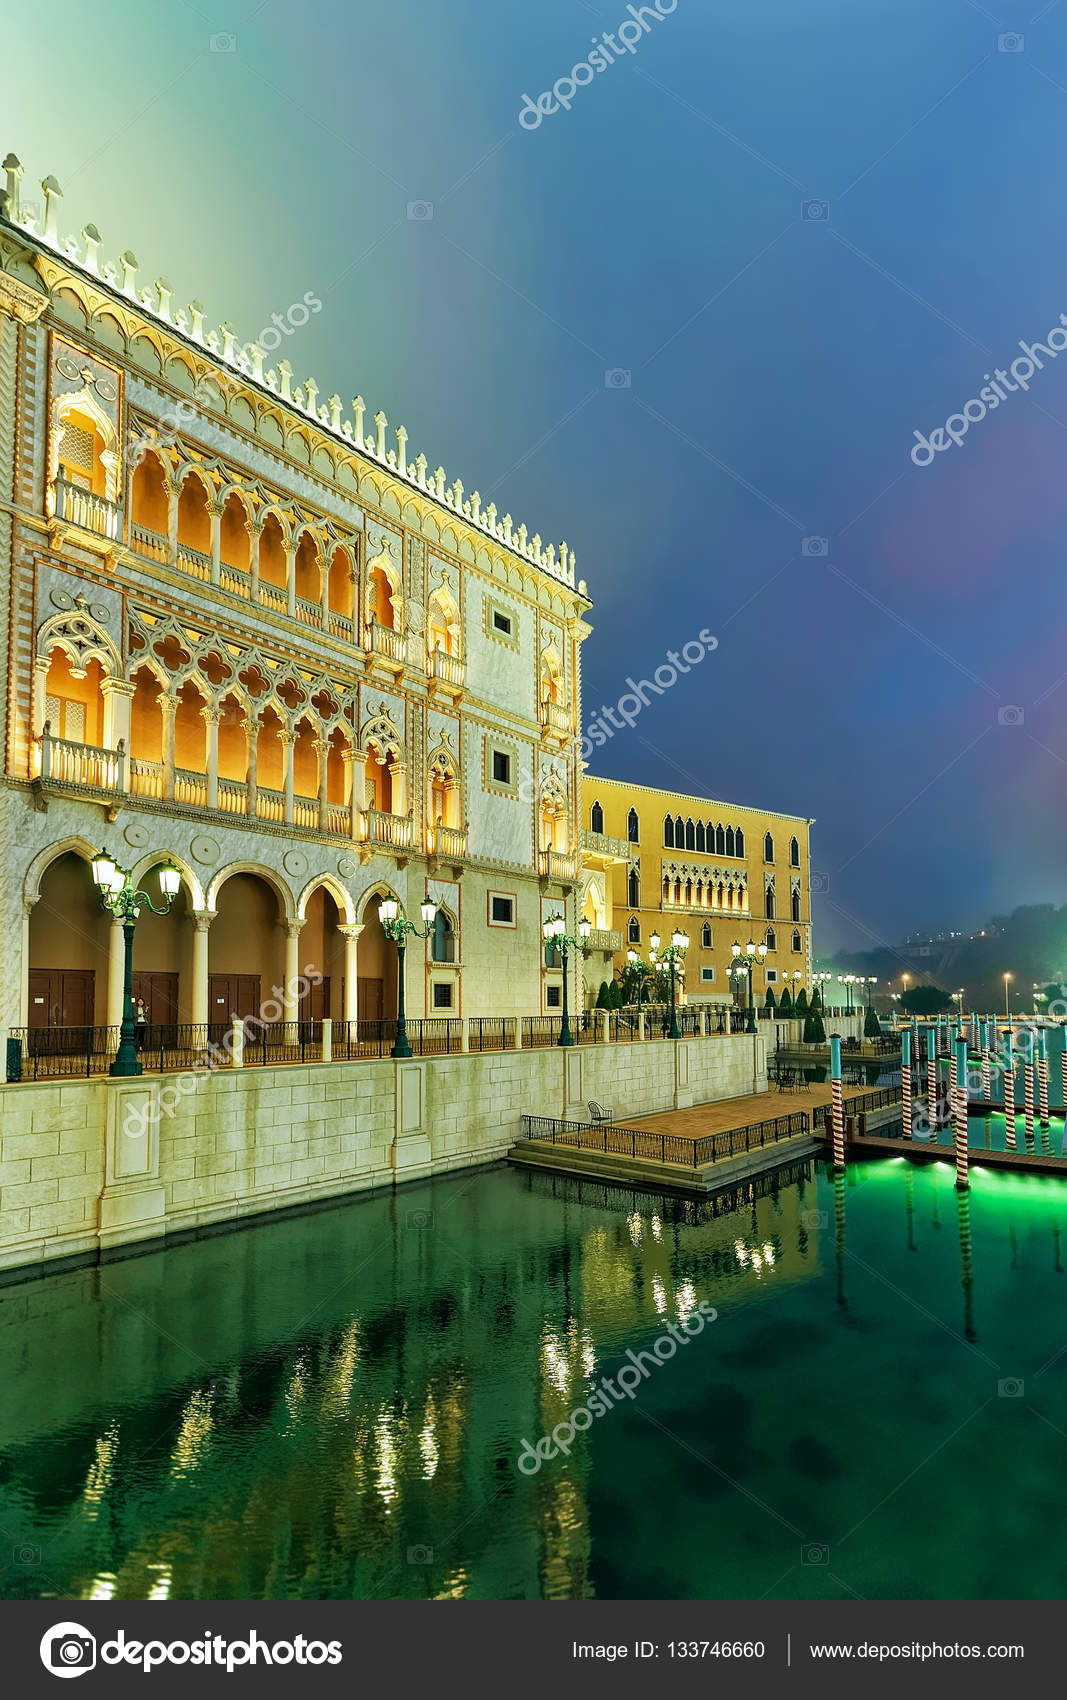 Venetian macao casino and hotel luxury resort macau golden light macao china march 8 2016 venetian macau casino and hotel luxury resort in macao china people on the background late in the evening thecheapjerseys Images